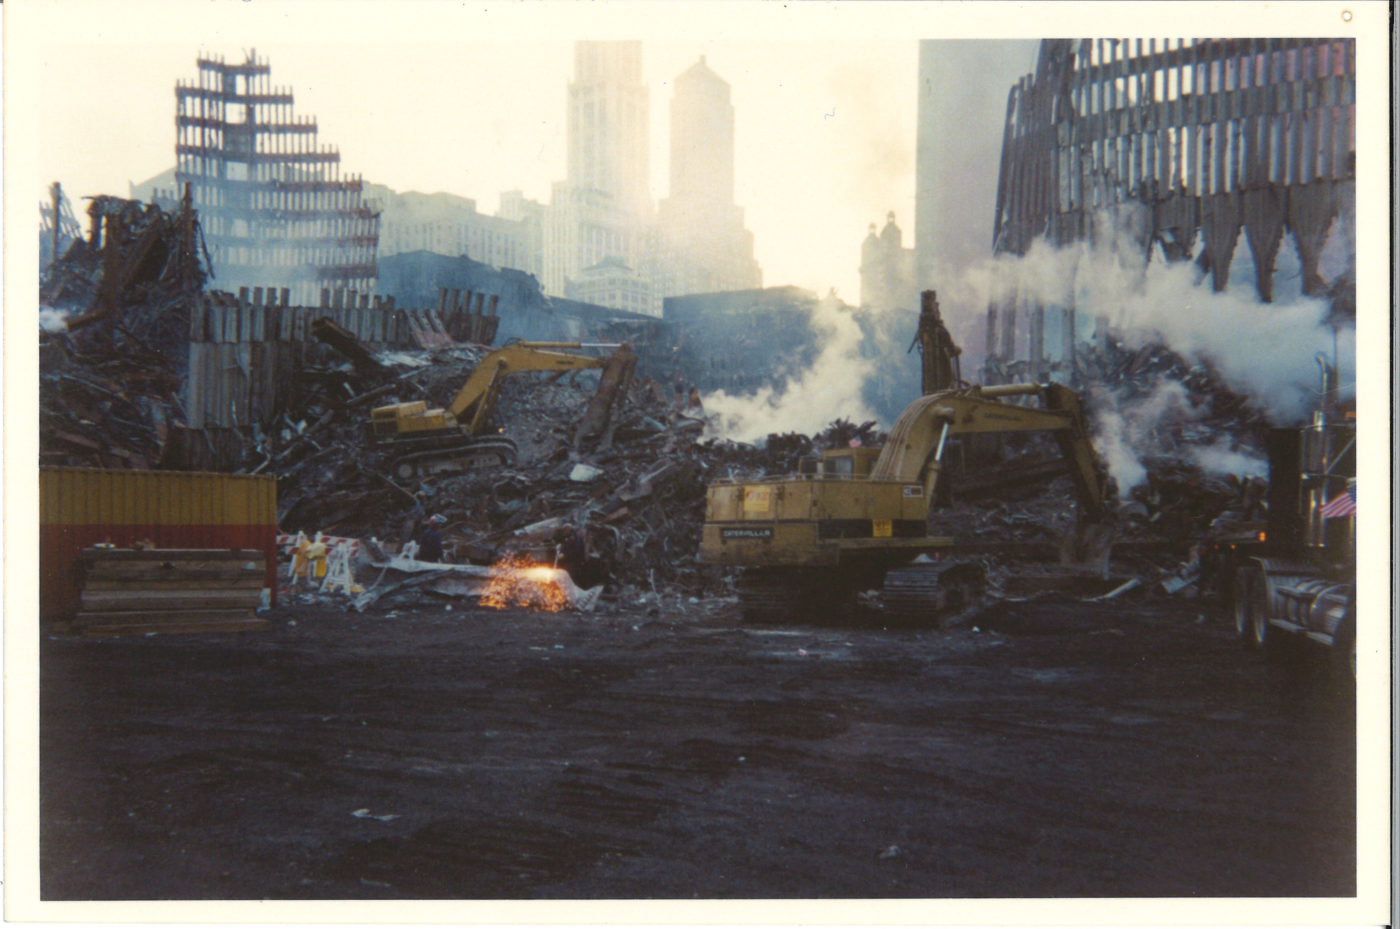 Looking northeast towards Ground Zero with remains of Tower 1 on left and Tower 2 on right